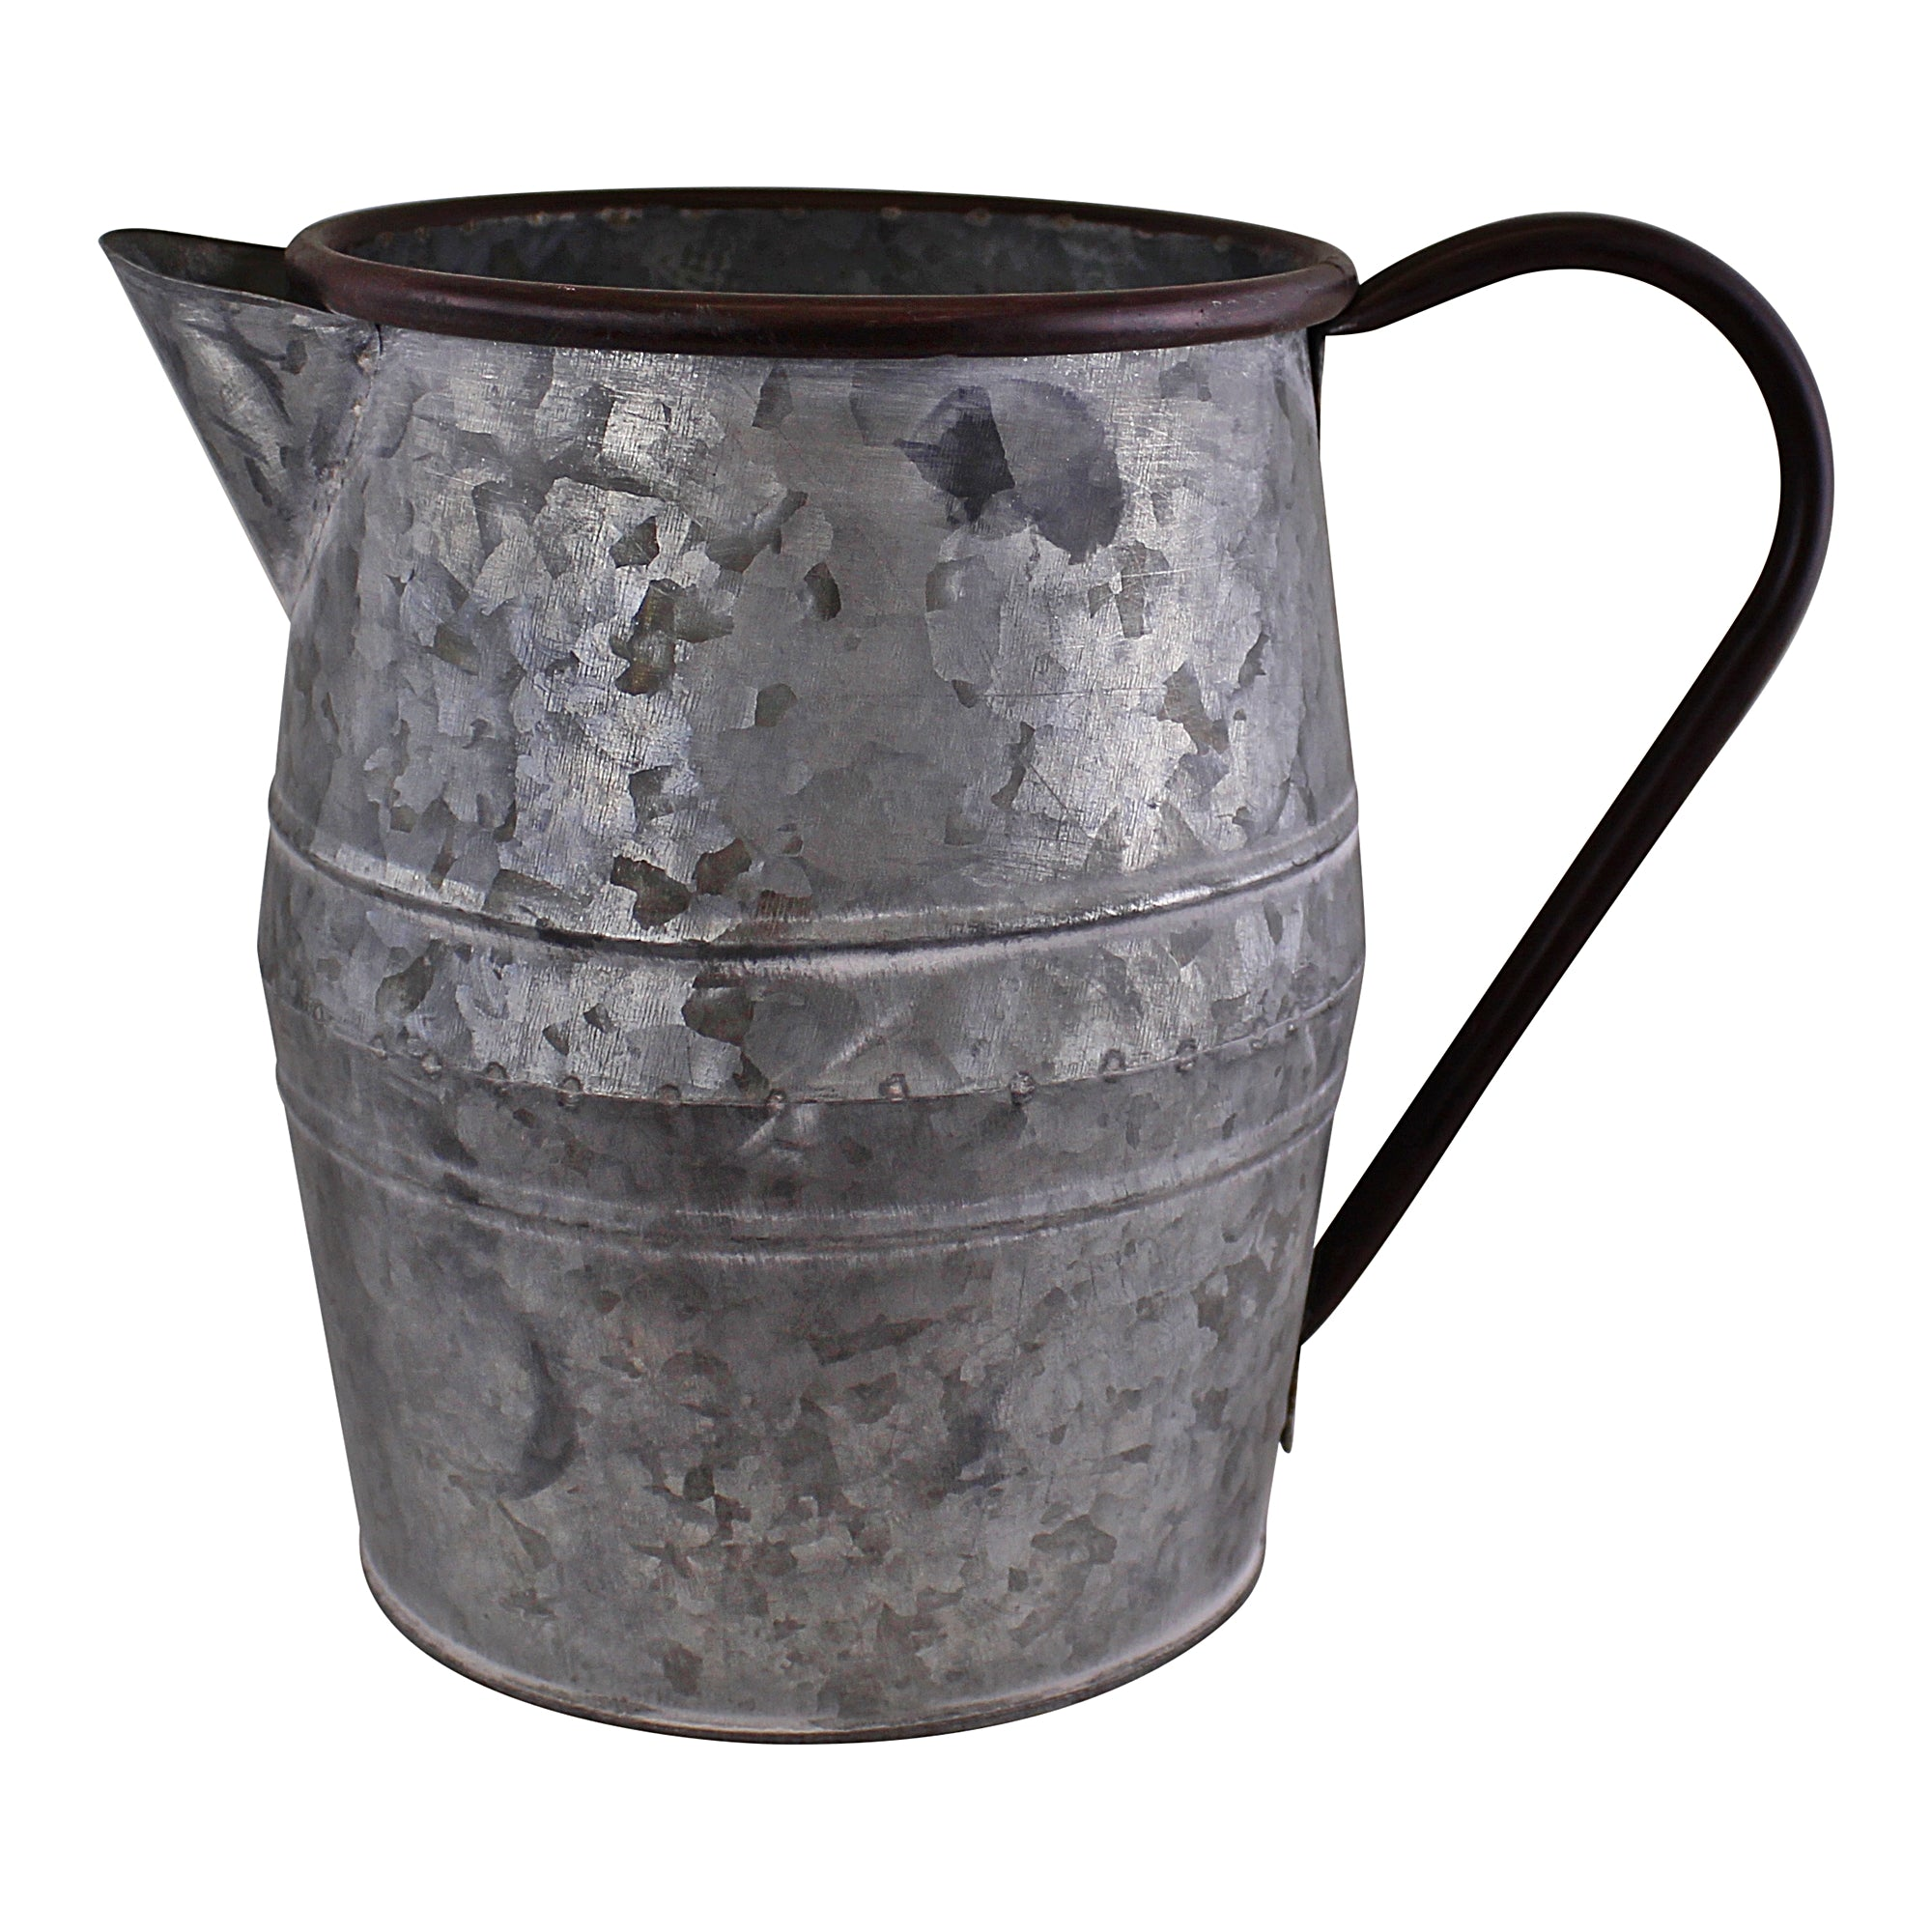 Vintage Style Metal Jug Garden Planter, Small, Lawn & Garden by Low Cost Gifts